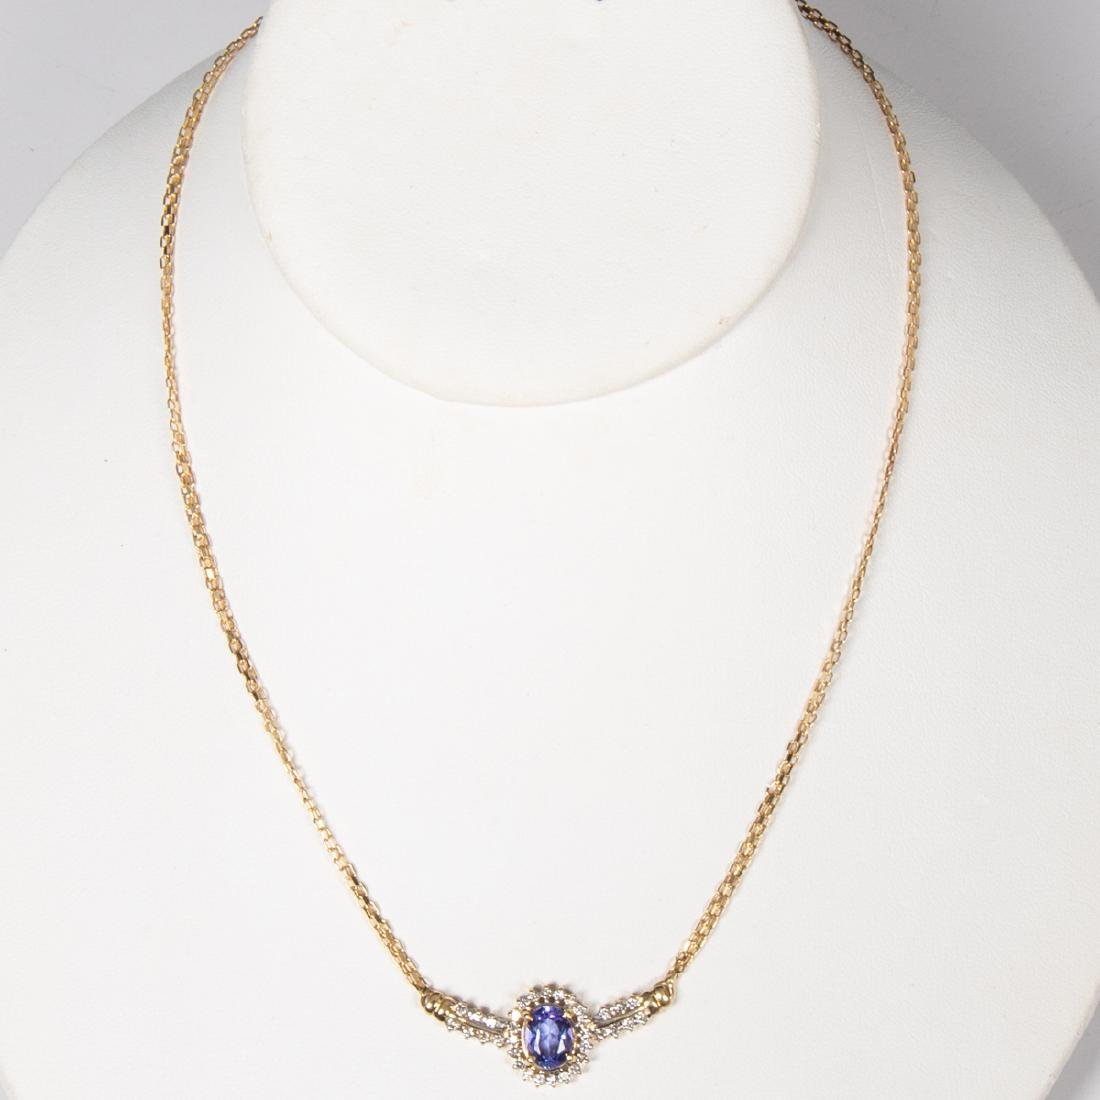 A 14kt Yellow Gold, Tanzanite and Diamond Necklace, - 5